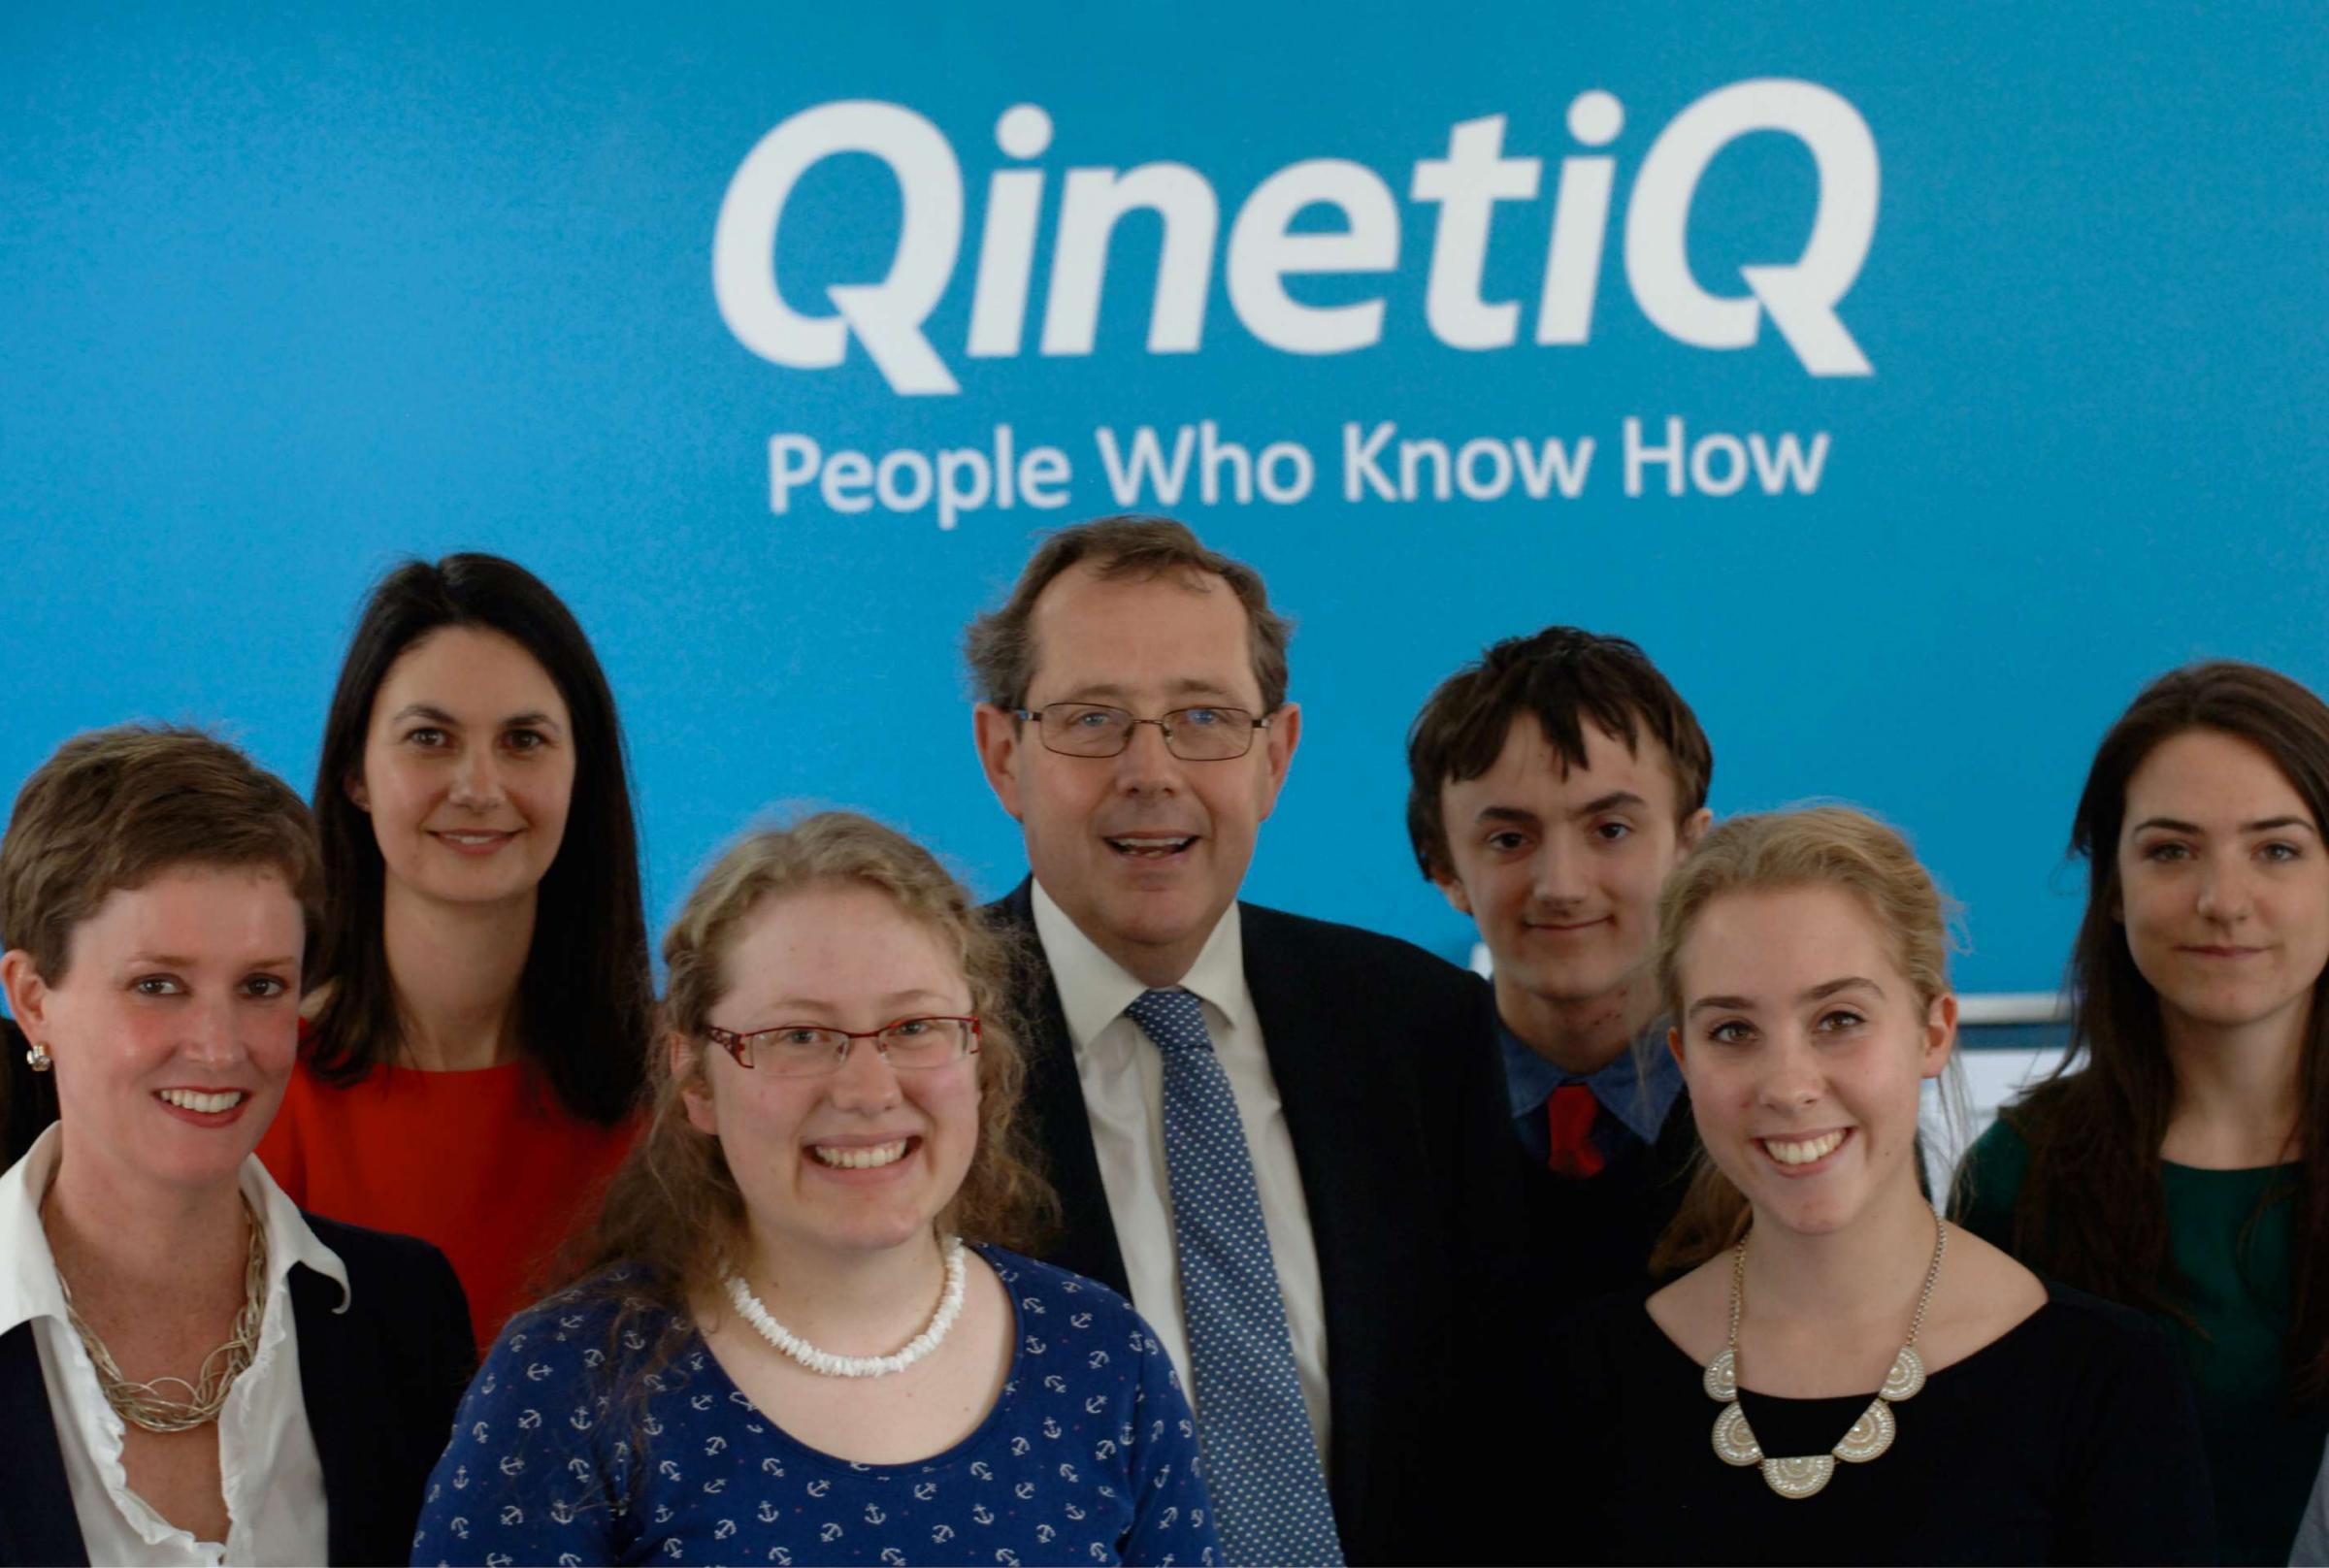 Sir Peter Luff MP meets QinetiQ graduates and students from The Chase School currently on placement with QinetiQ. Dr Mary Haigh, Head of Cyber Defence at QinetiQ, is on the far left.